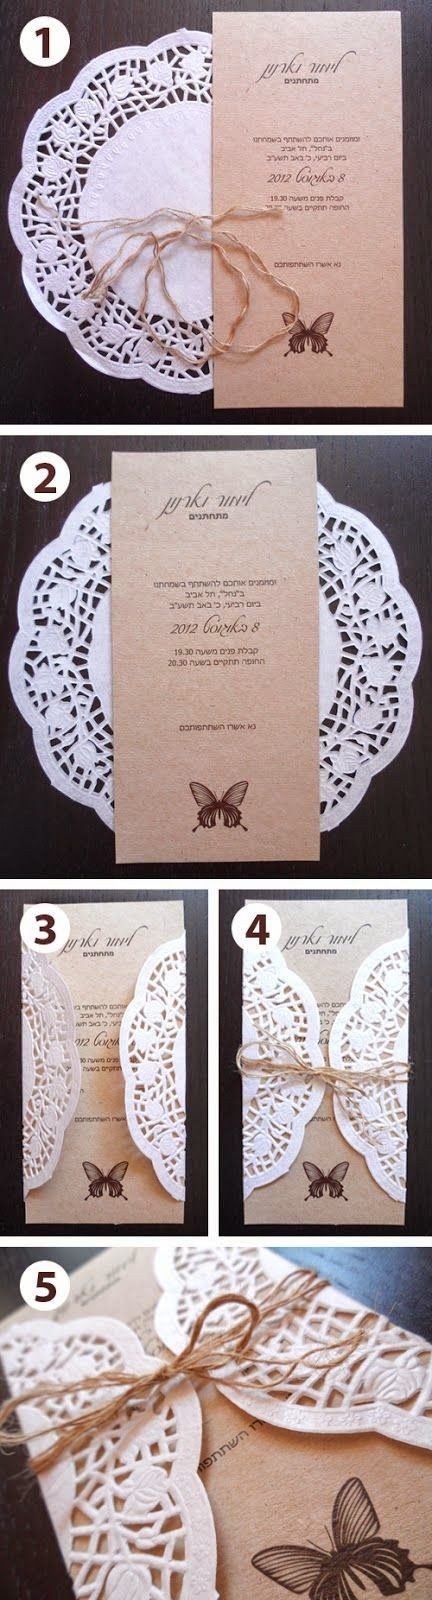 We're Having A Butterfly Themed Wedding - Release The Butterflies! - Wedding Invitations.   | Read more:  http://simpleweddingstuff.blogspot.com/2015/03/were-having-butterfly-themed-wedding.html